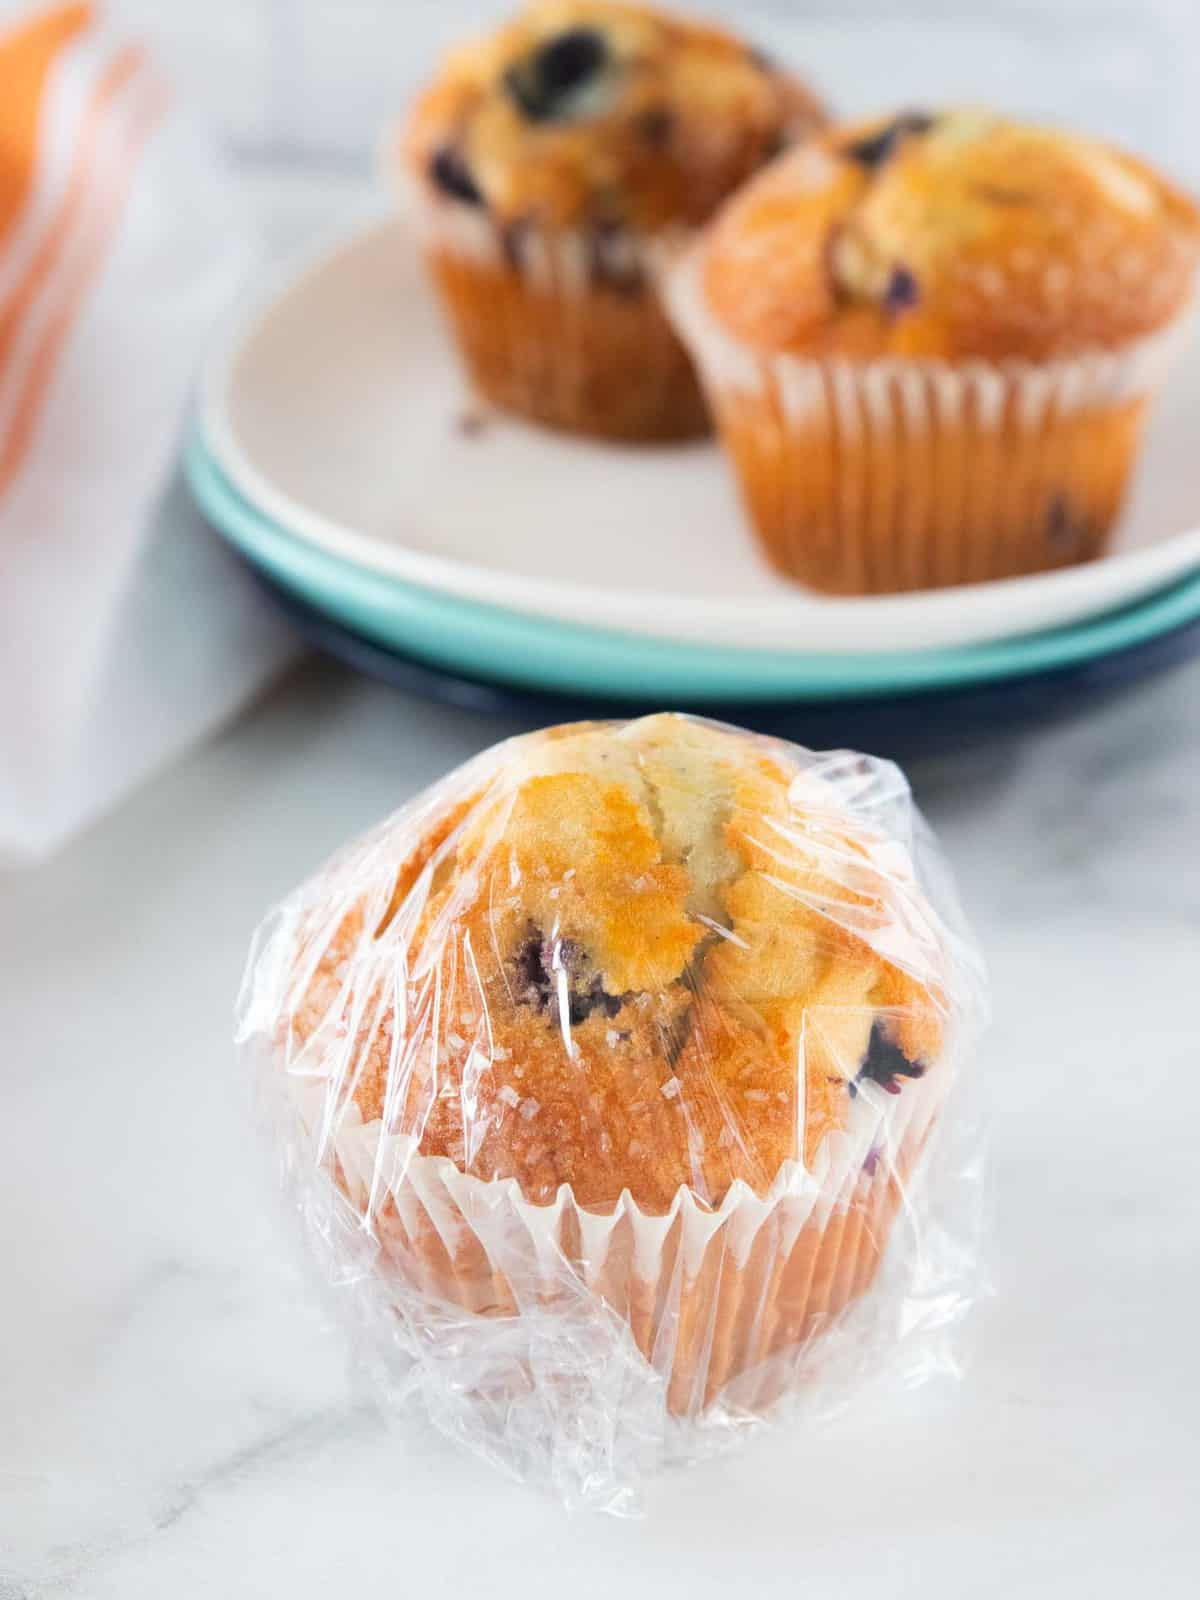 Muffin wrapped in Saran Wrap.